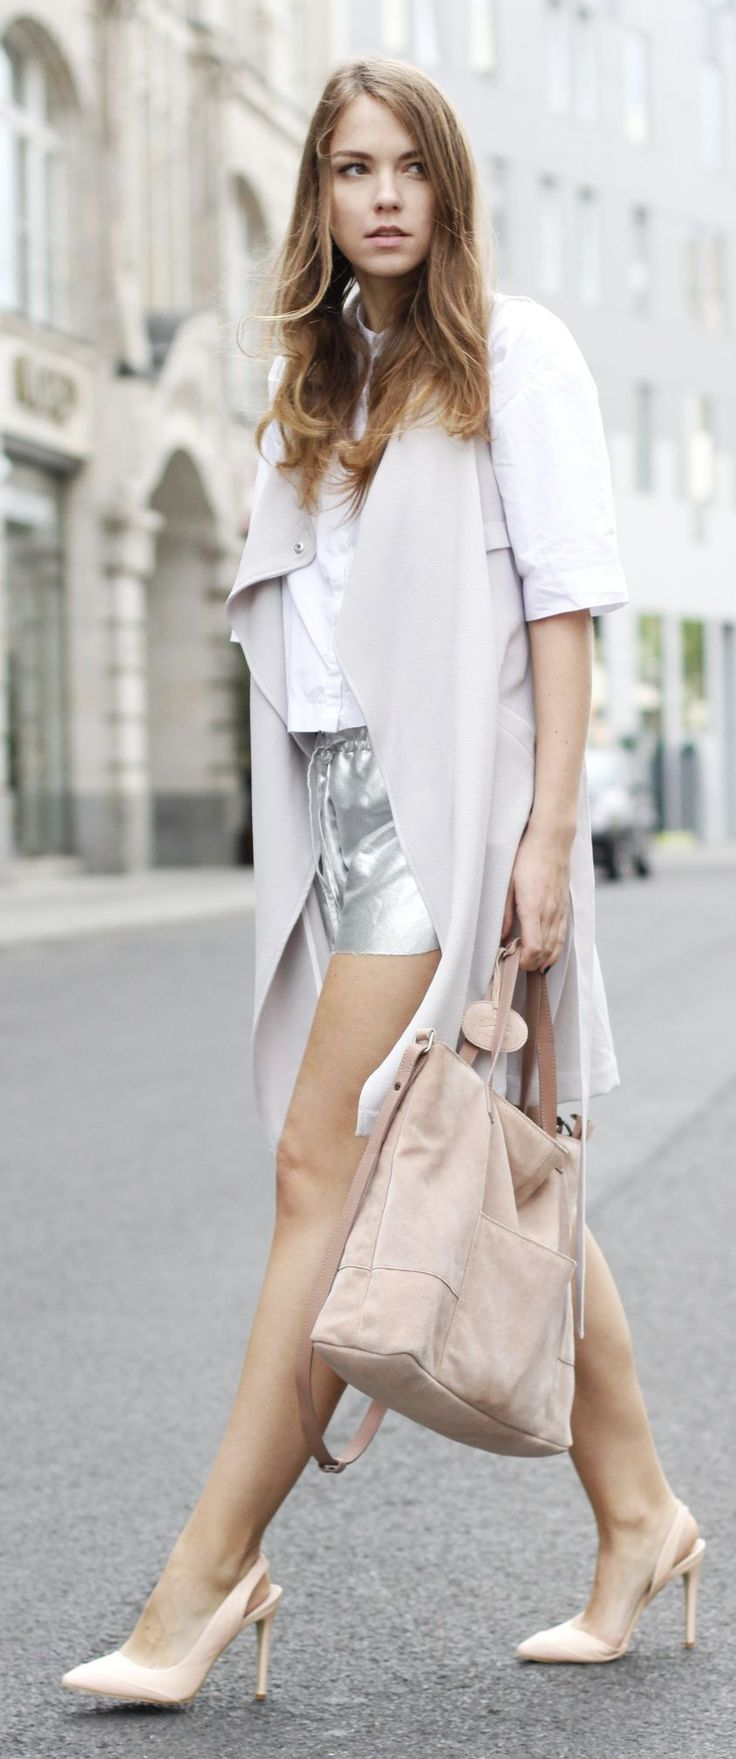 Silver Shorts Spring Style by Goldschnee